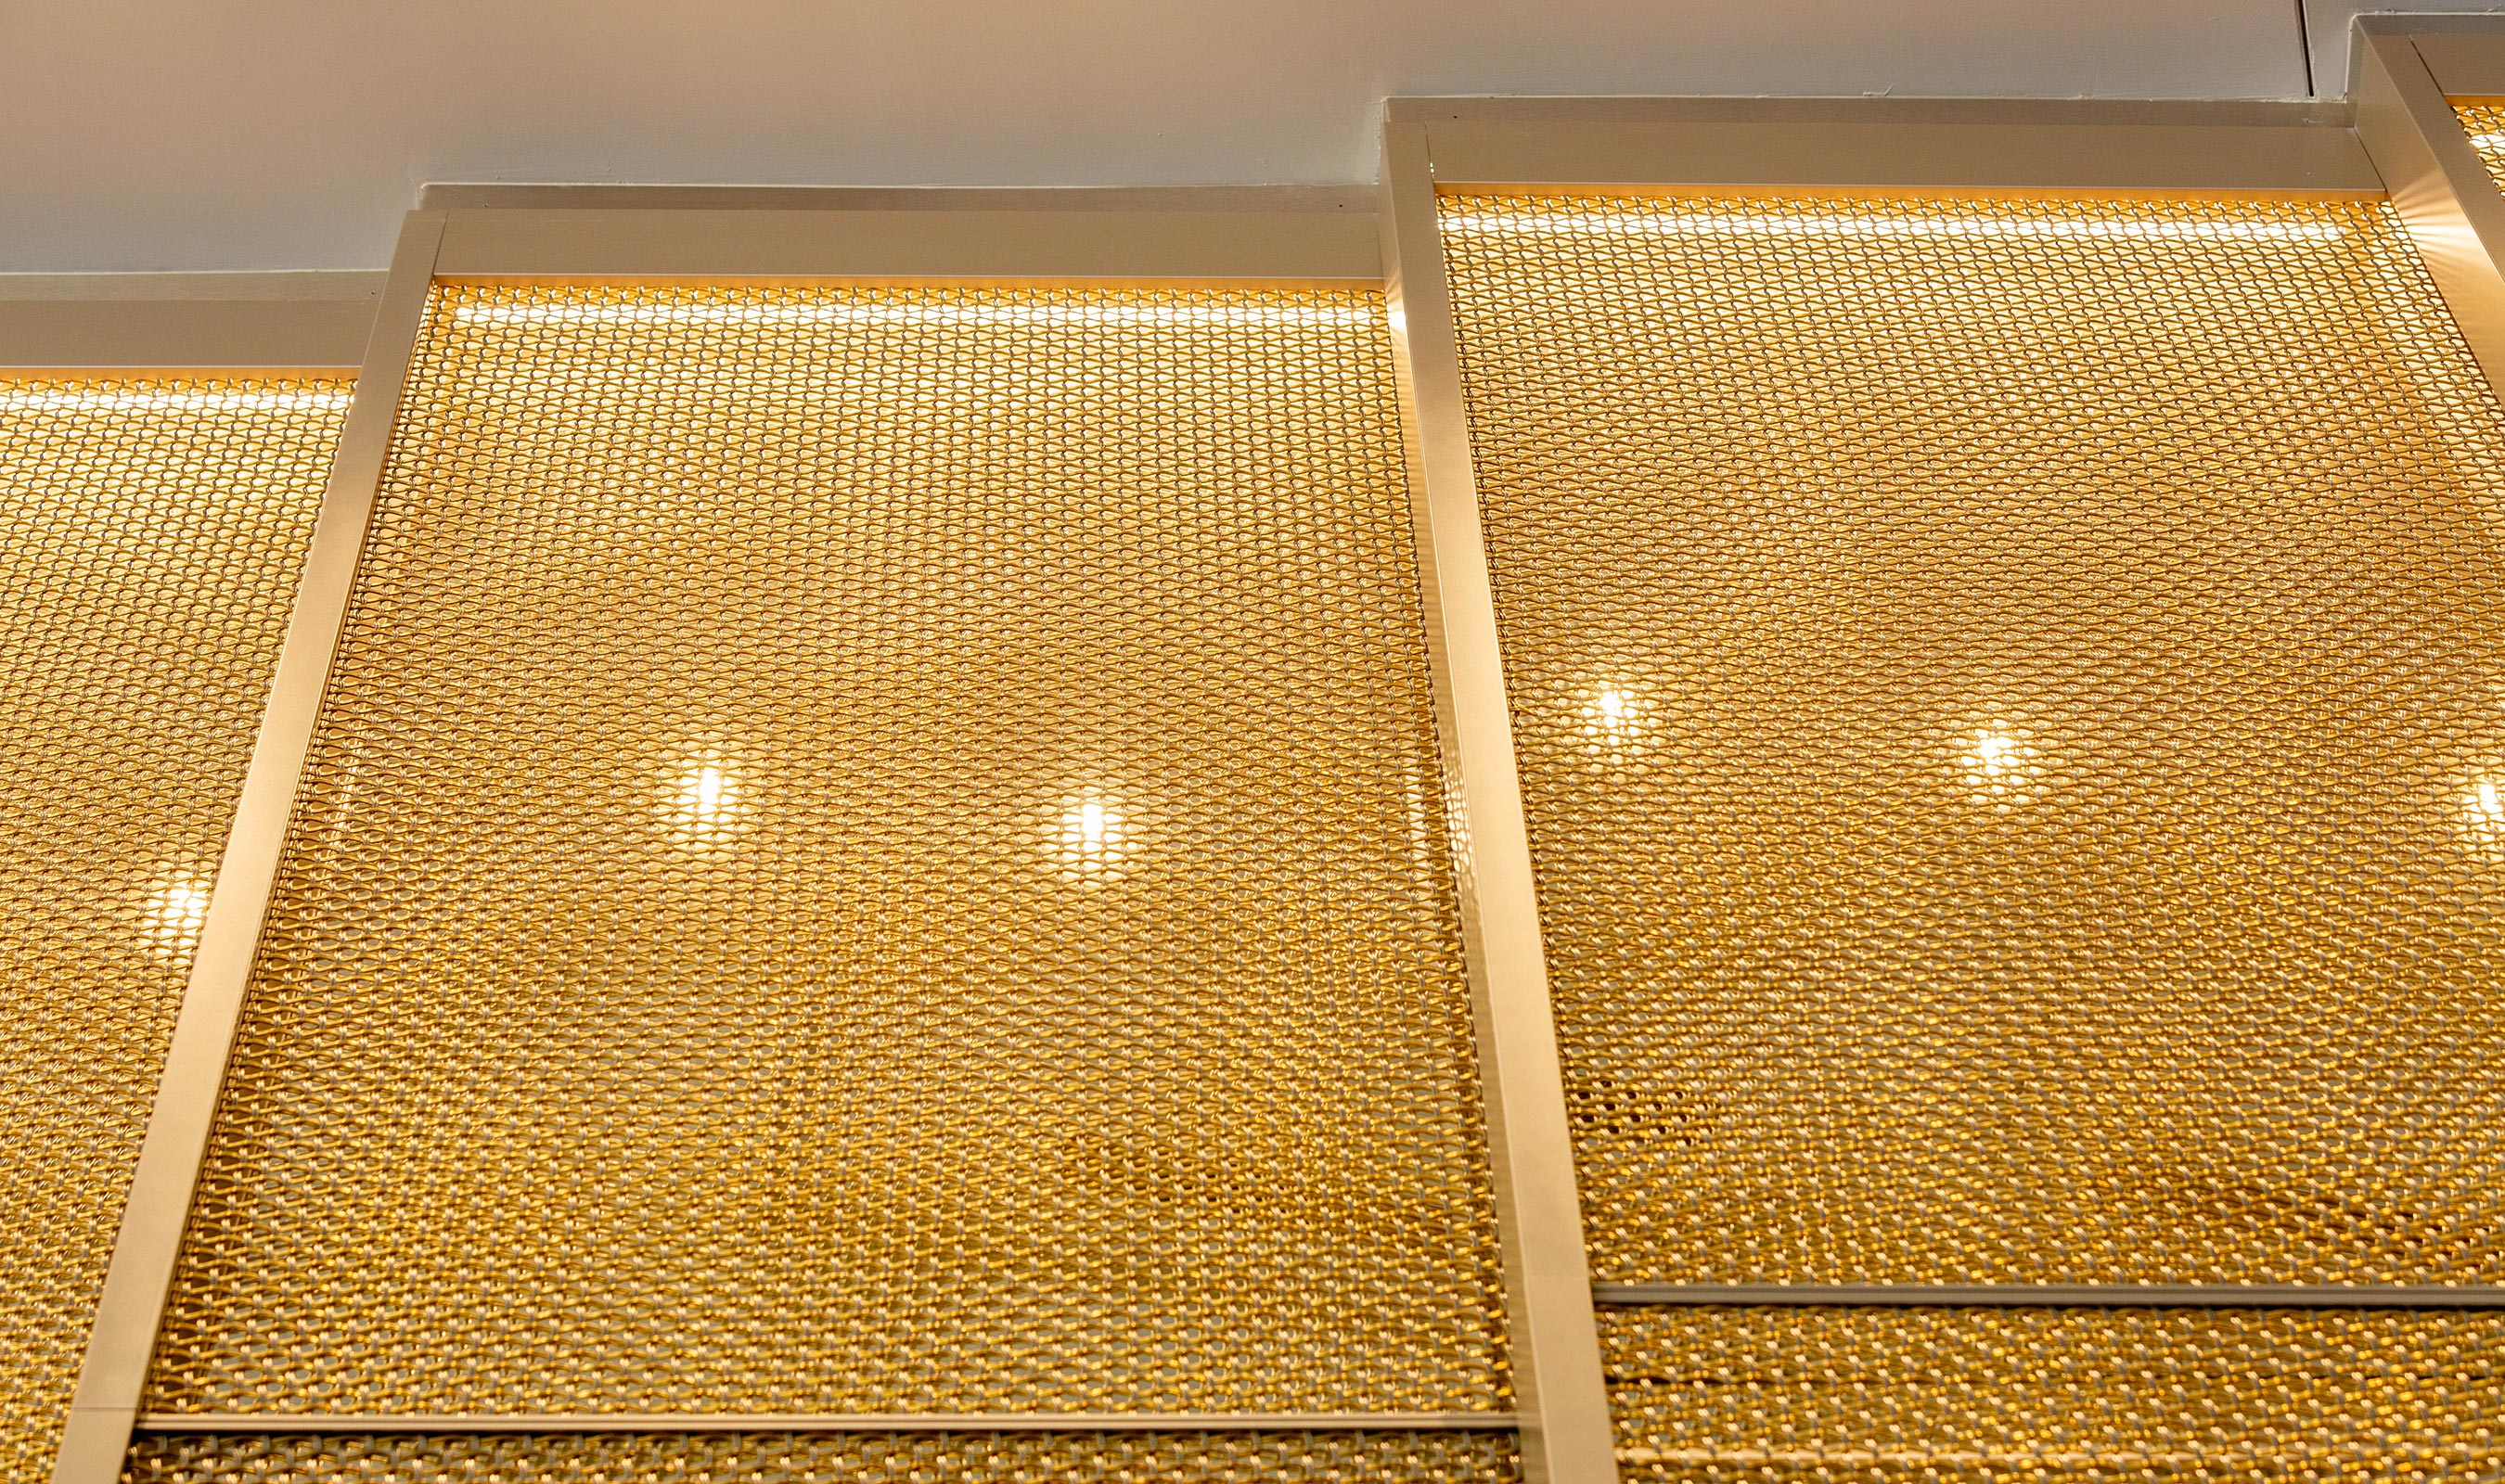 M22-80 decorative wire mesh woven in stainless steel and brass for wall panels